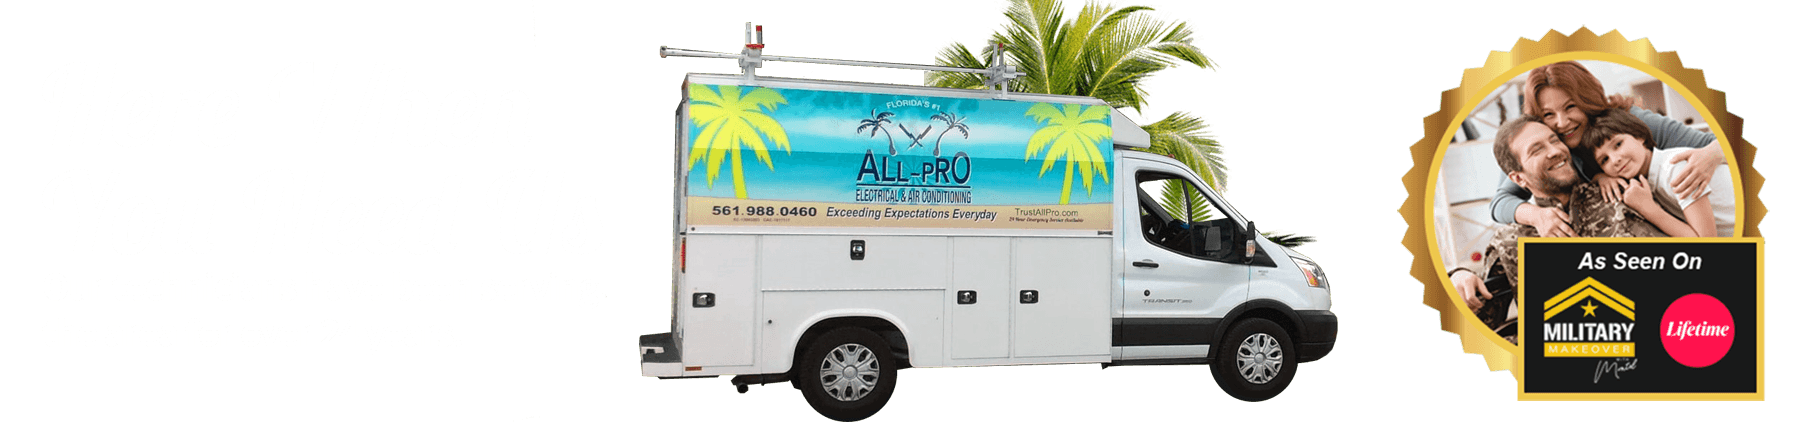 All-Pro Electrical & Air Conditioning Boca Raton Florida